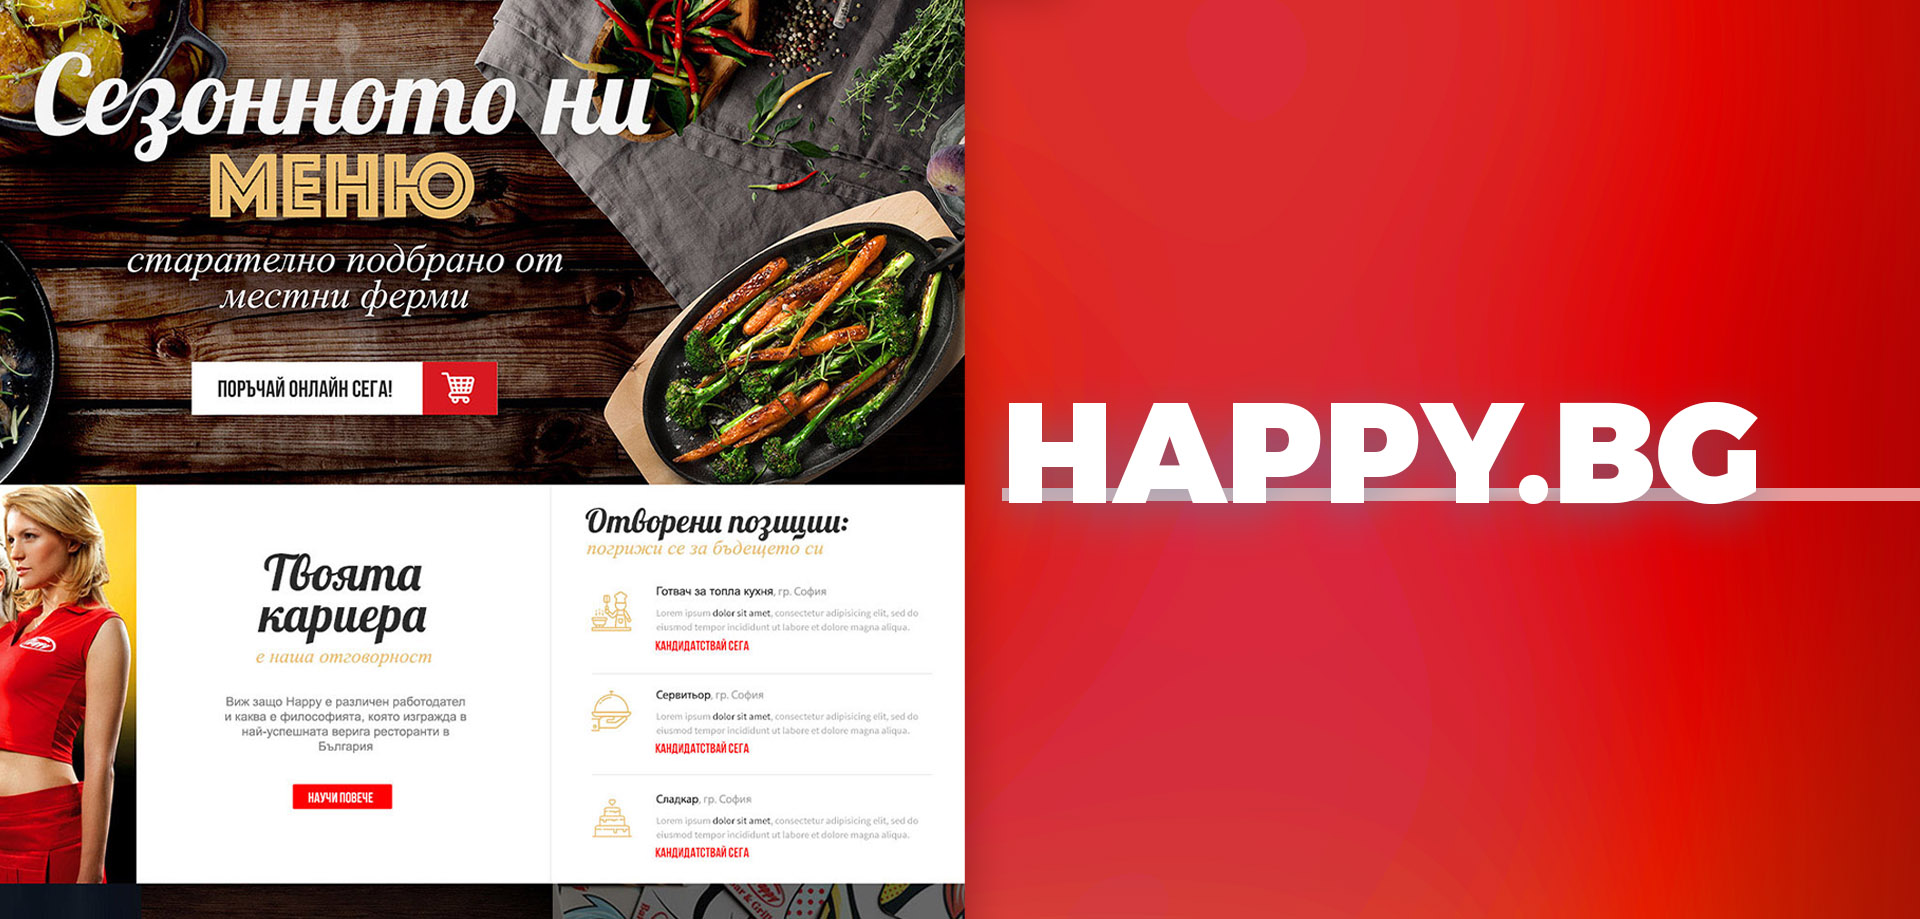 afterteam projects wordpress 03 happy 2019 banner01